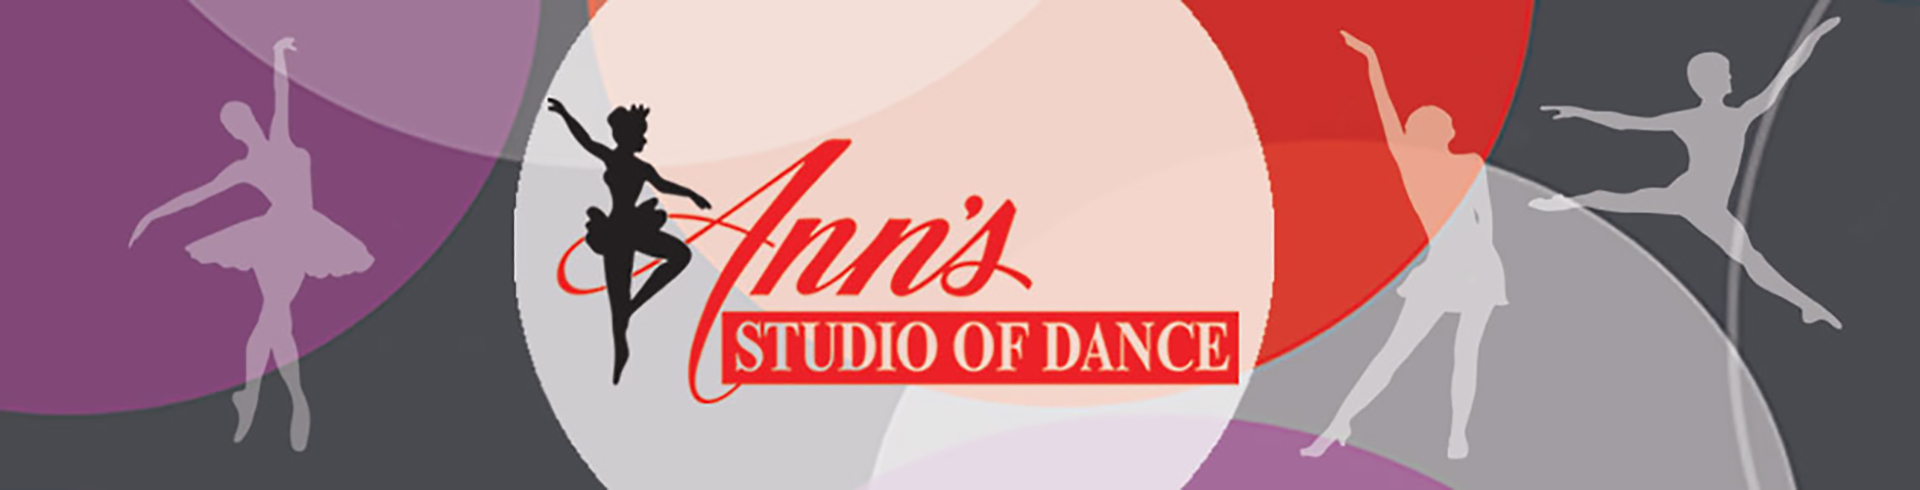 Ann's Studio of Dance